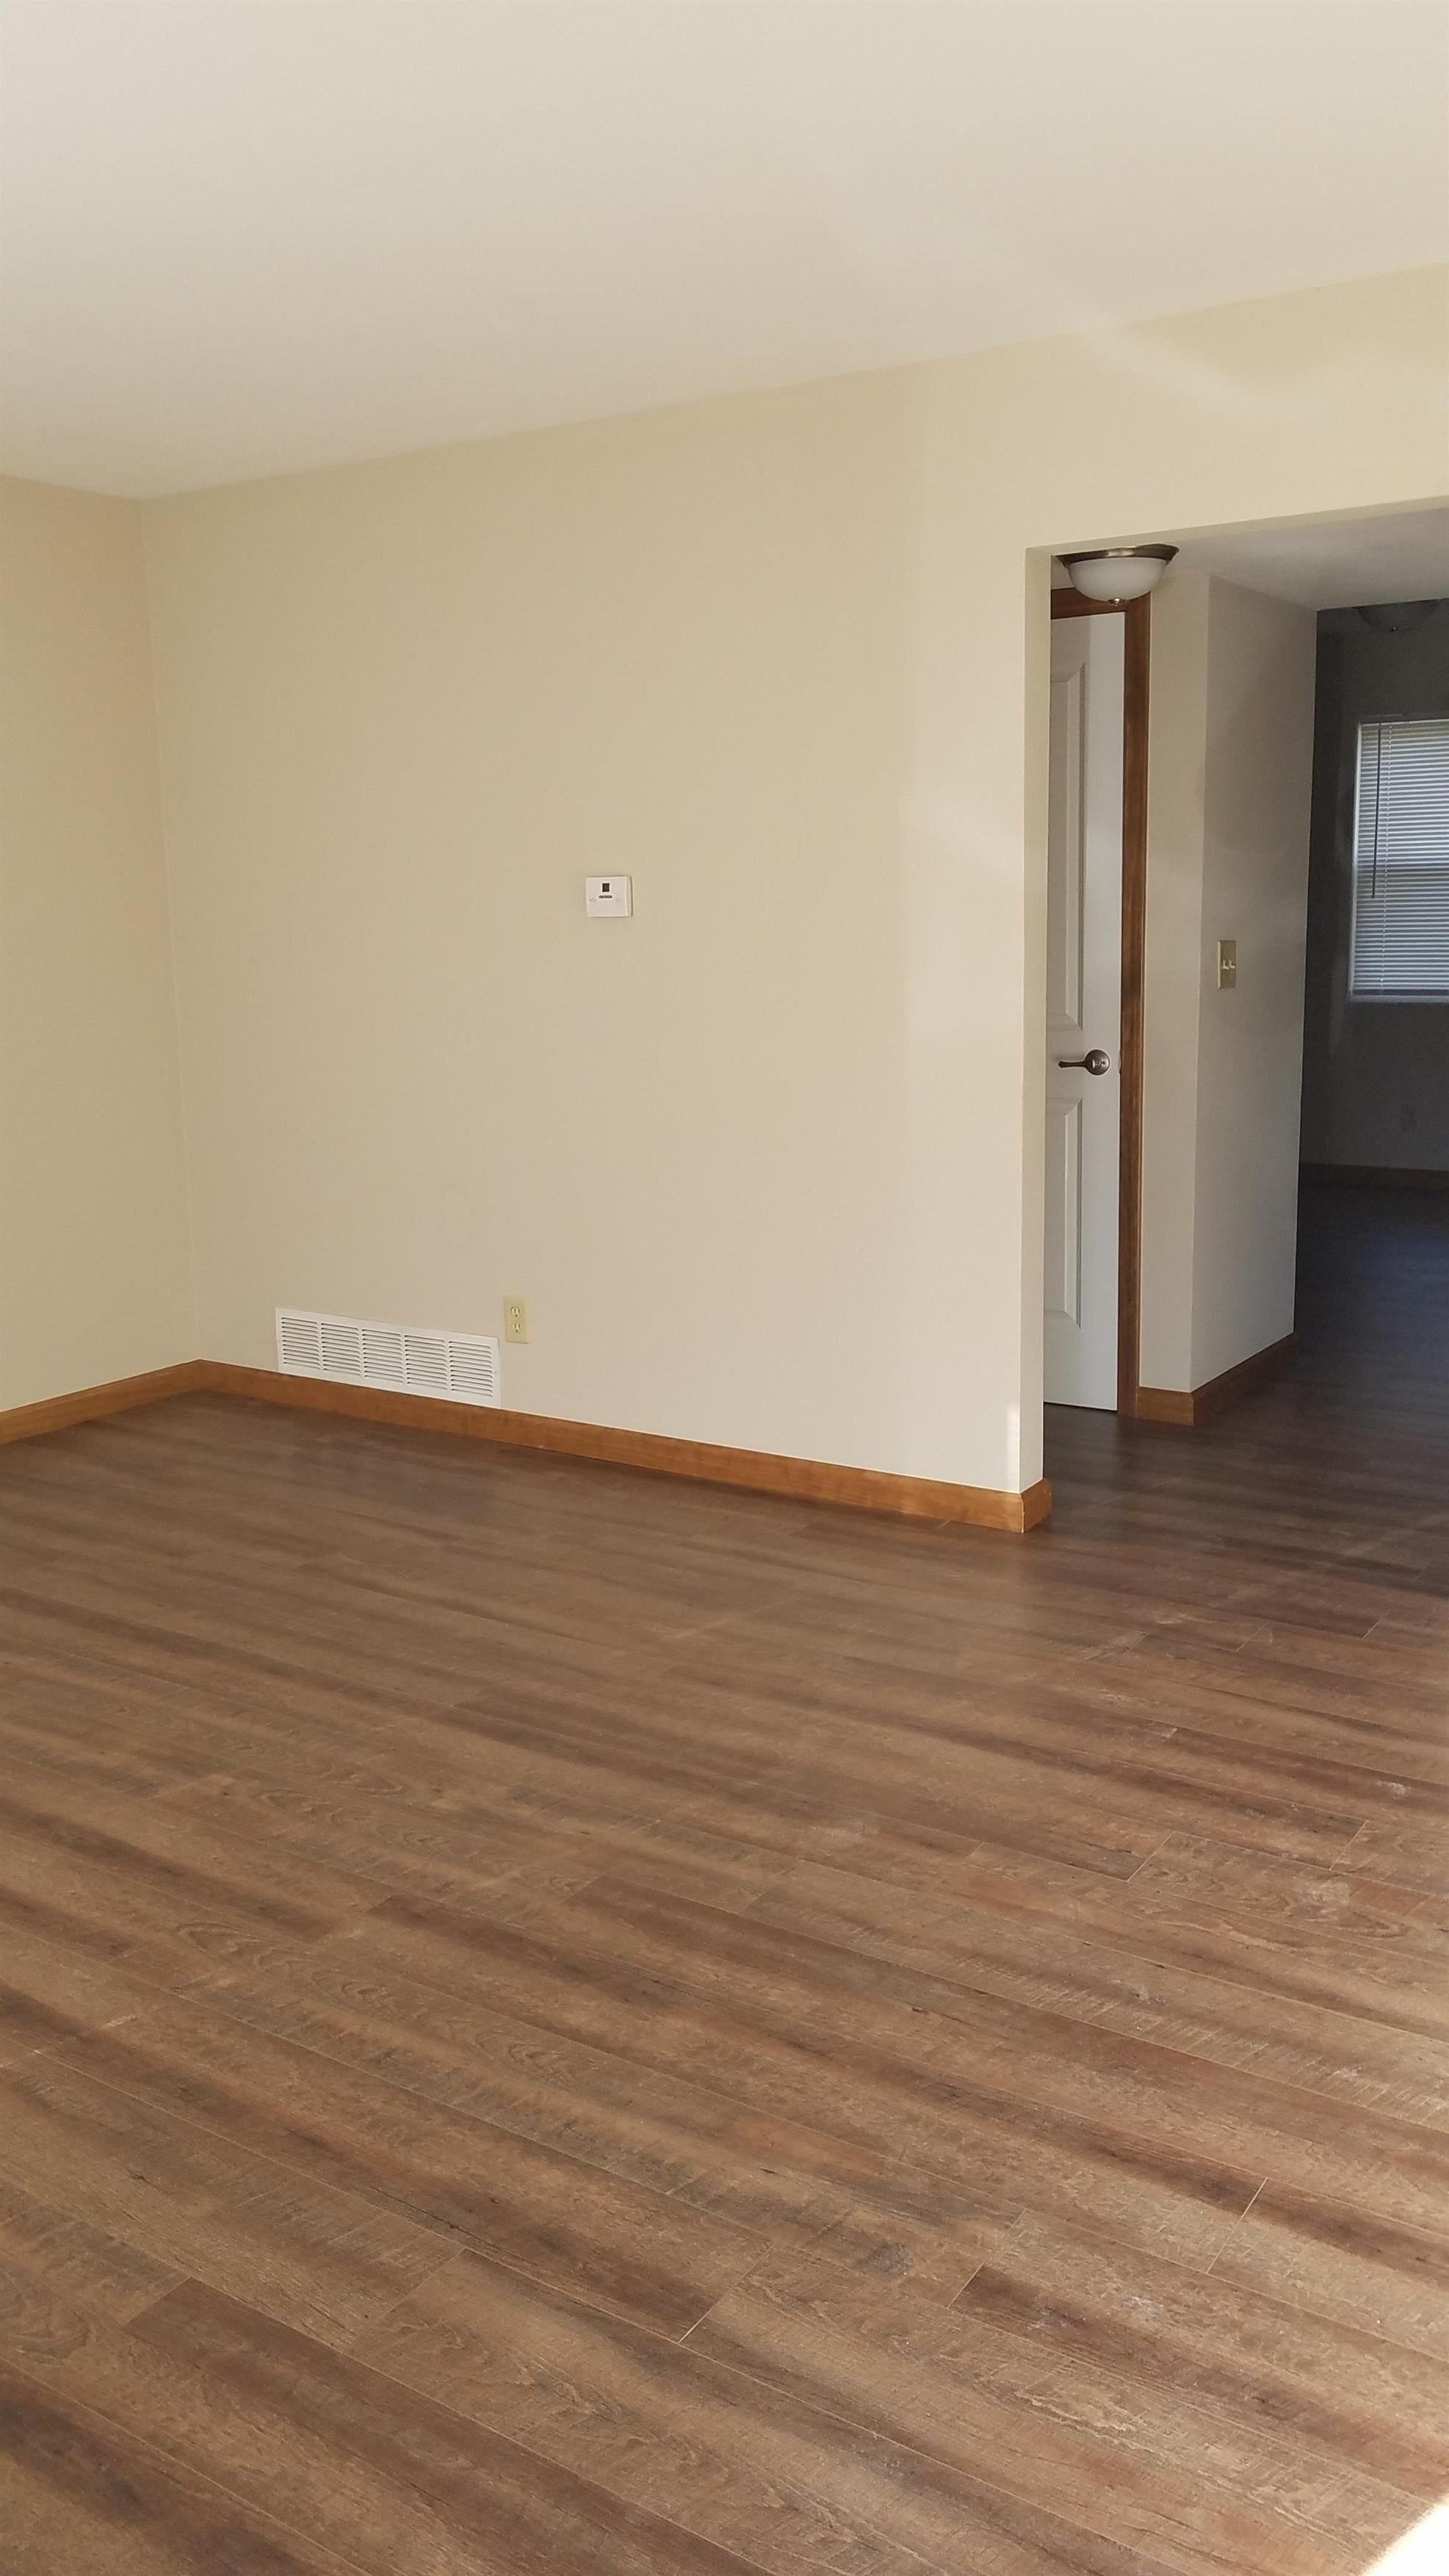 Images of 38 Heritage Pl